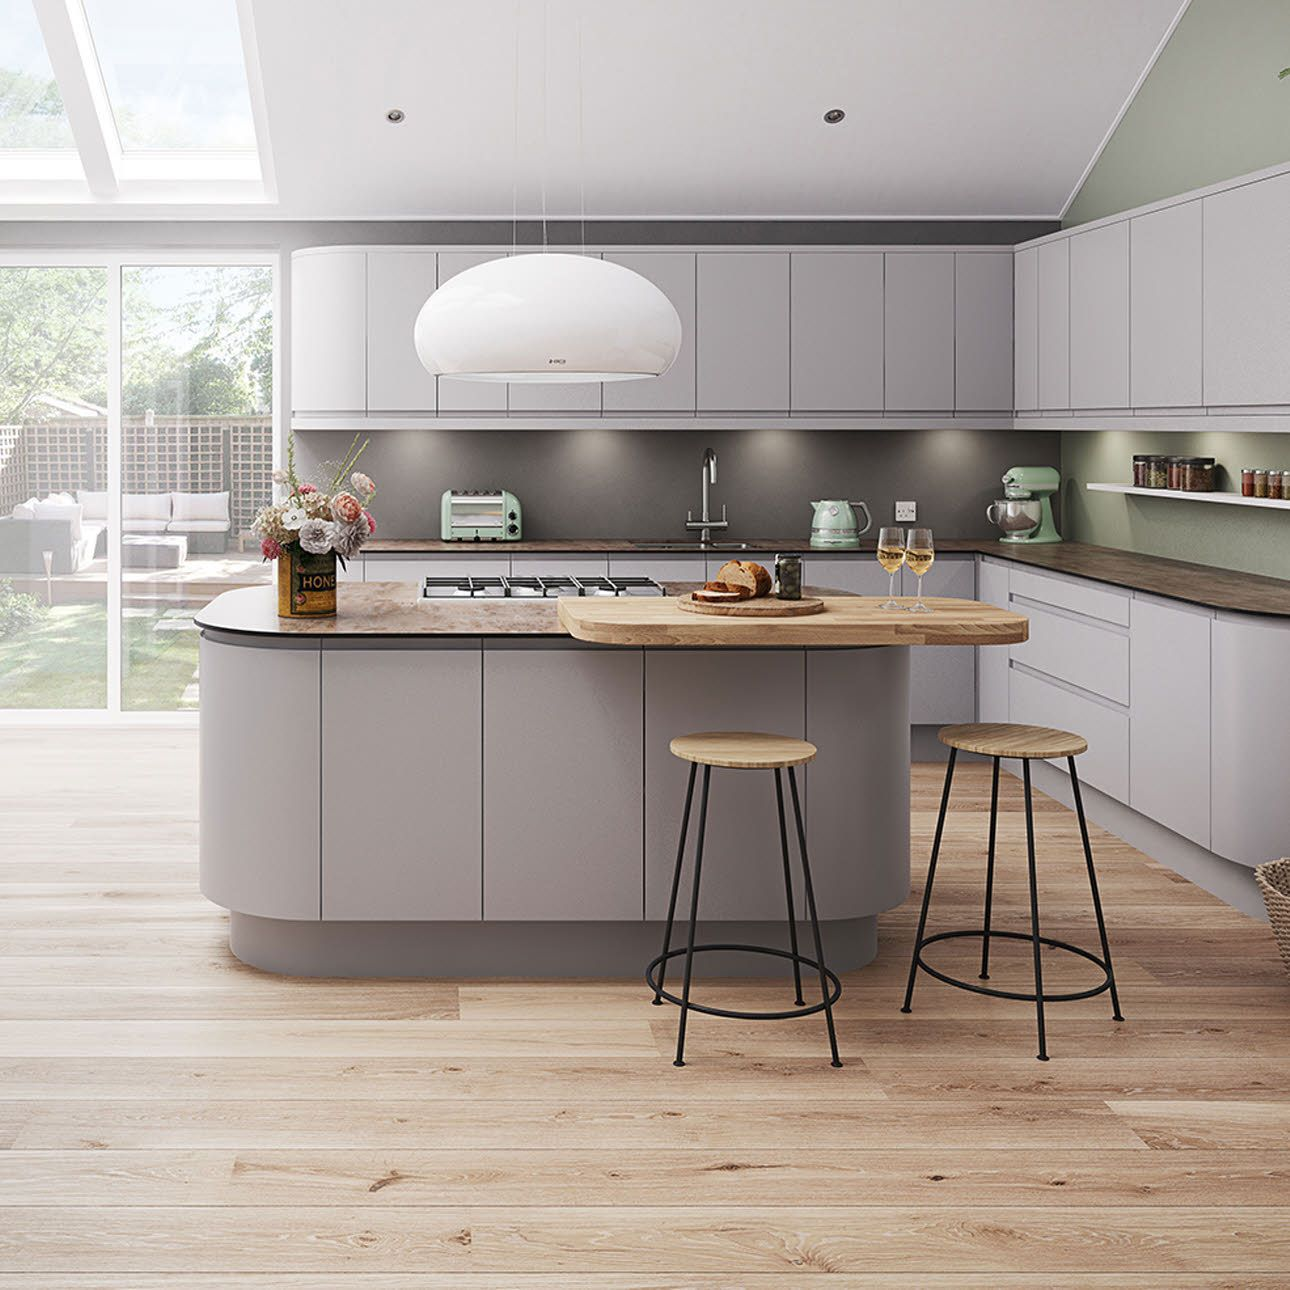 Luna matt light grey kitchen Luna Cashmere